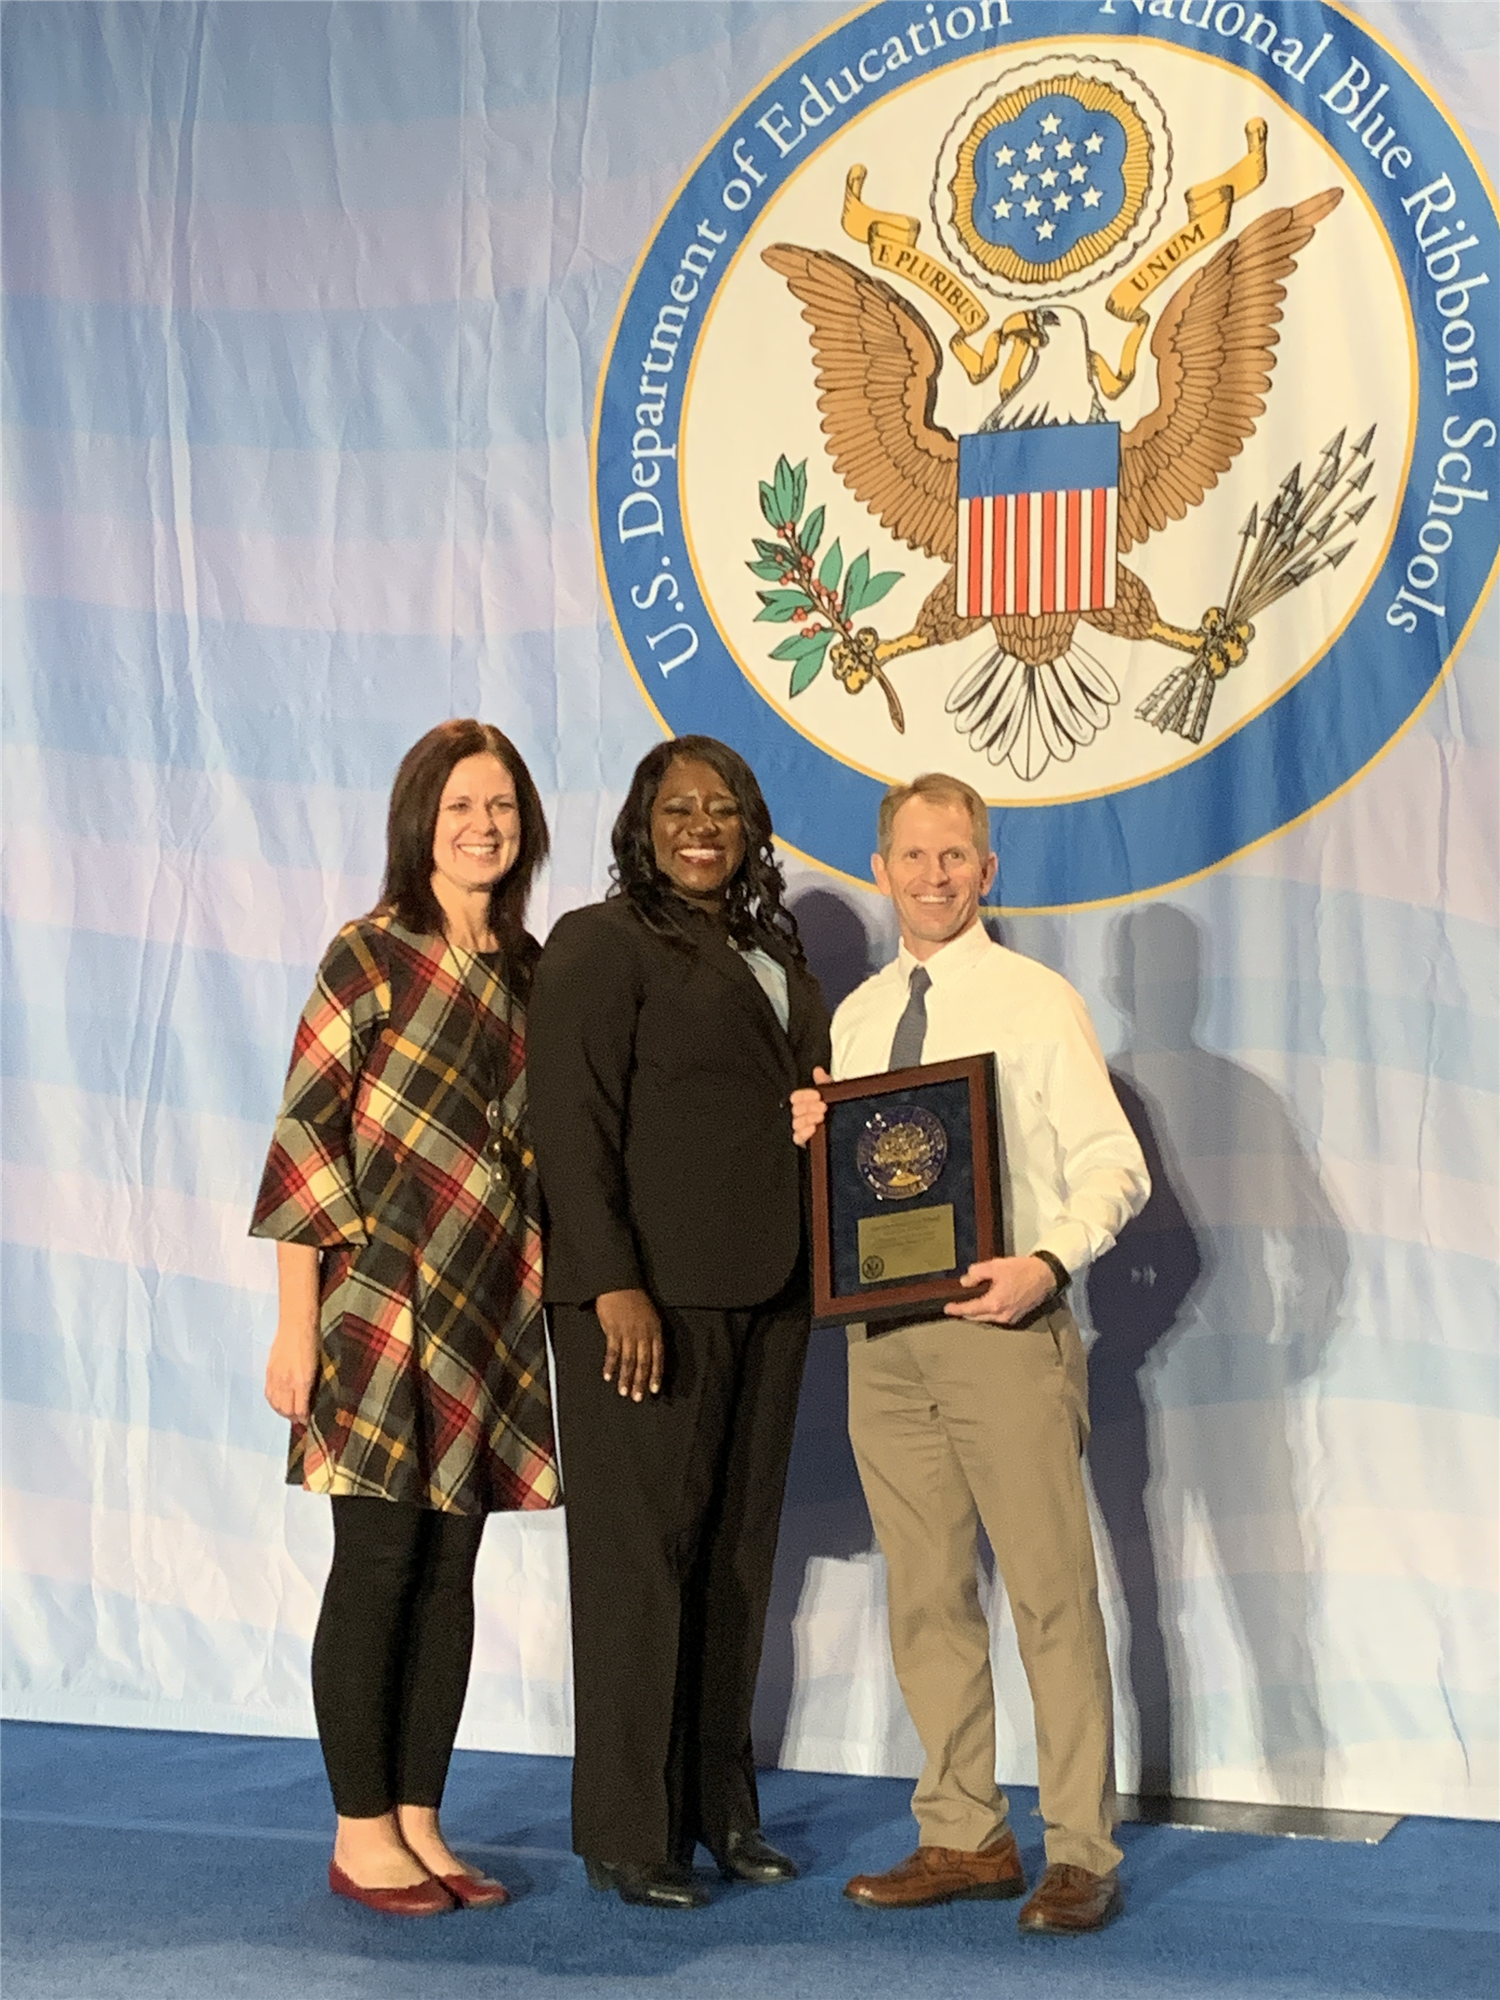 Lincoln Elementary School Named National Blue Ribbon School for 2019